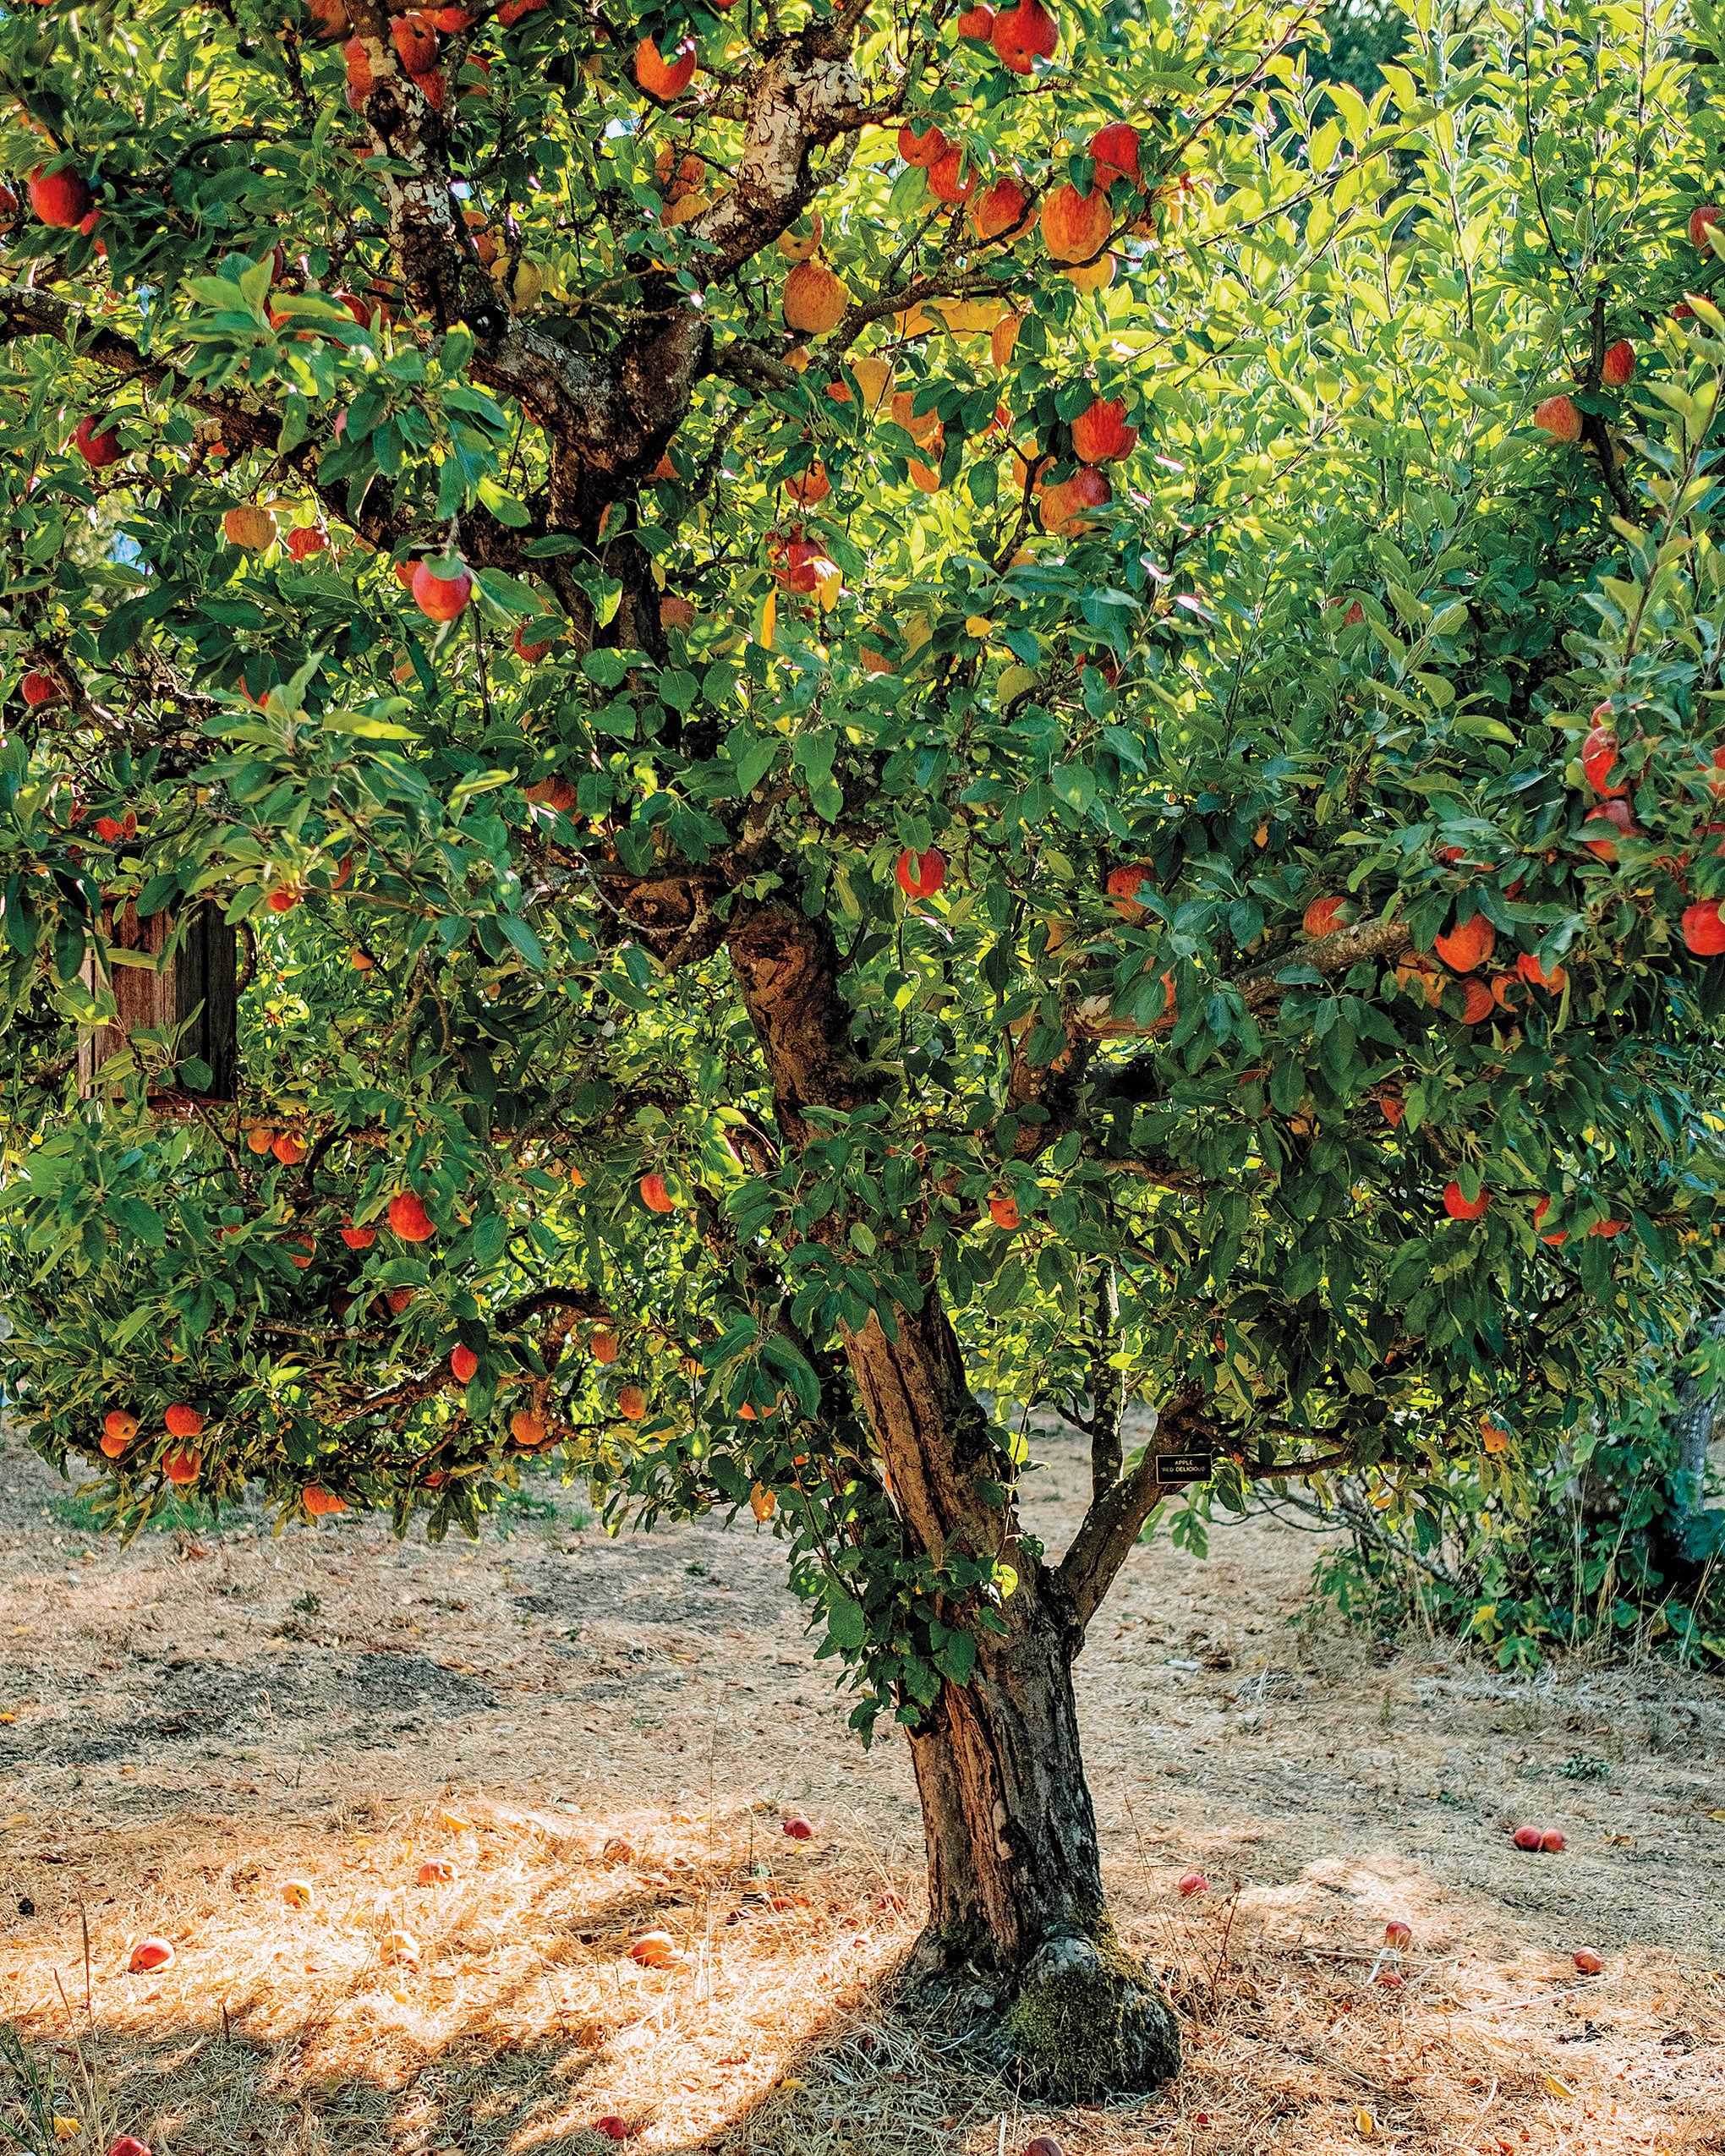 Orchards_tree_cr Lucas_Saugen_ed